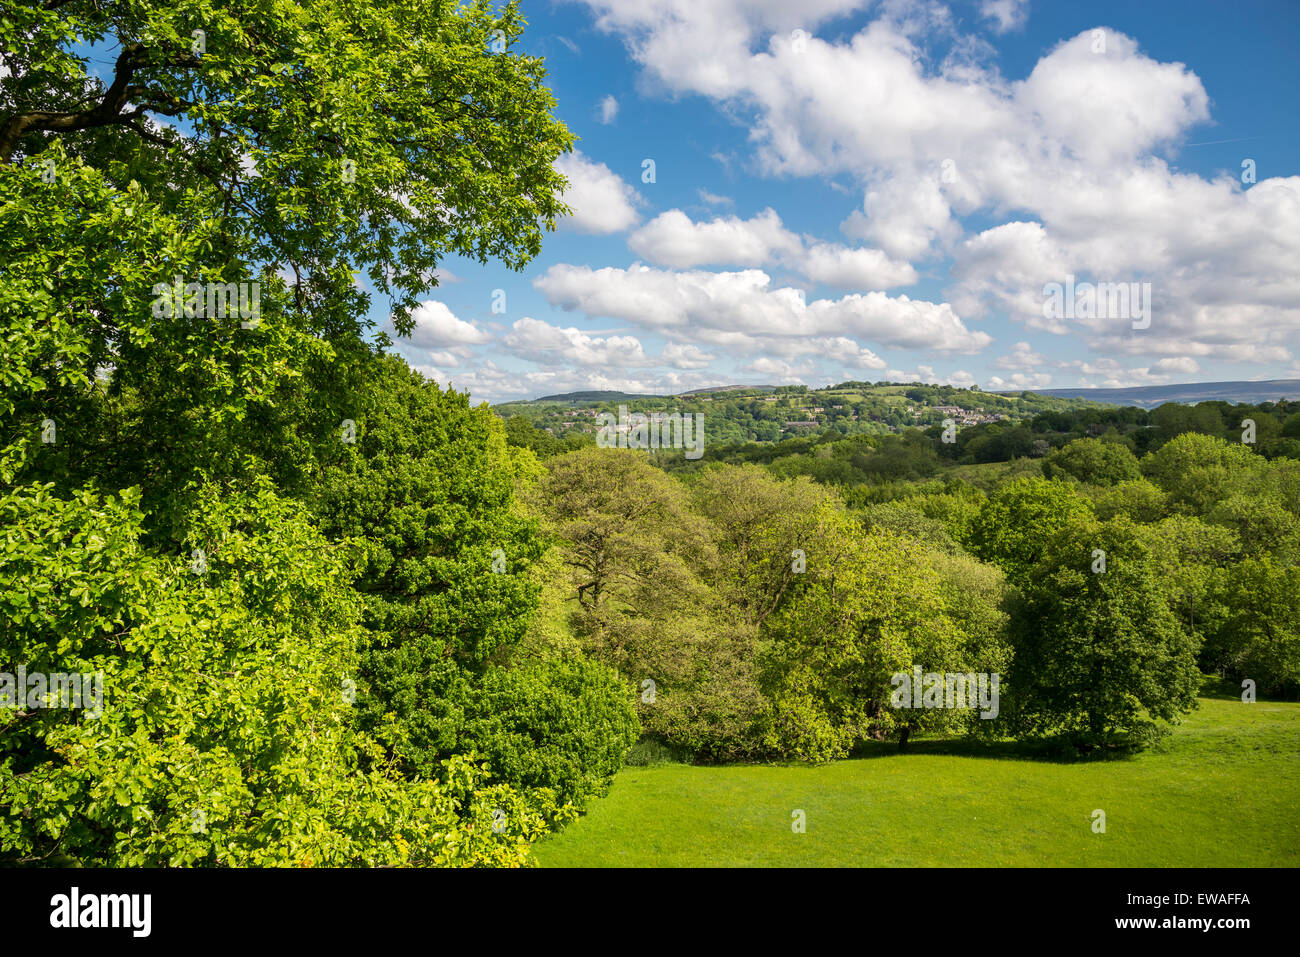 English countryside on a sunny day in June. View towards the village of Broadbottom in Tameside. - Stock Image